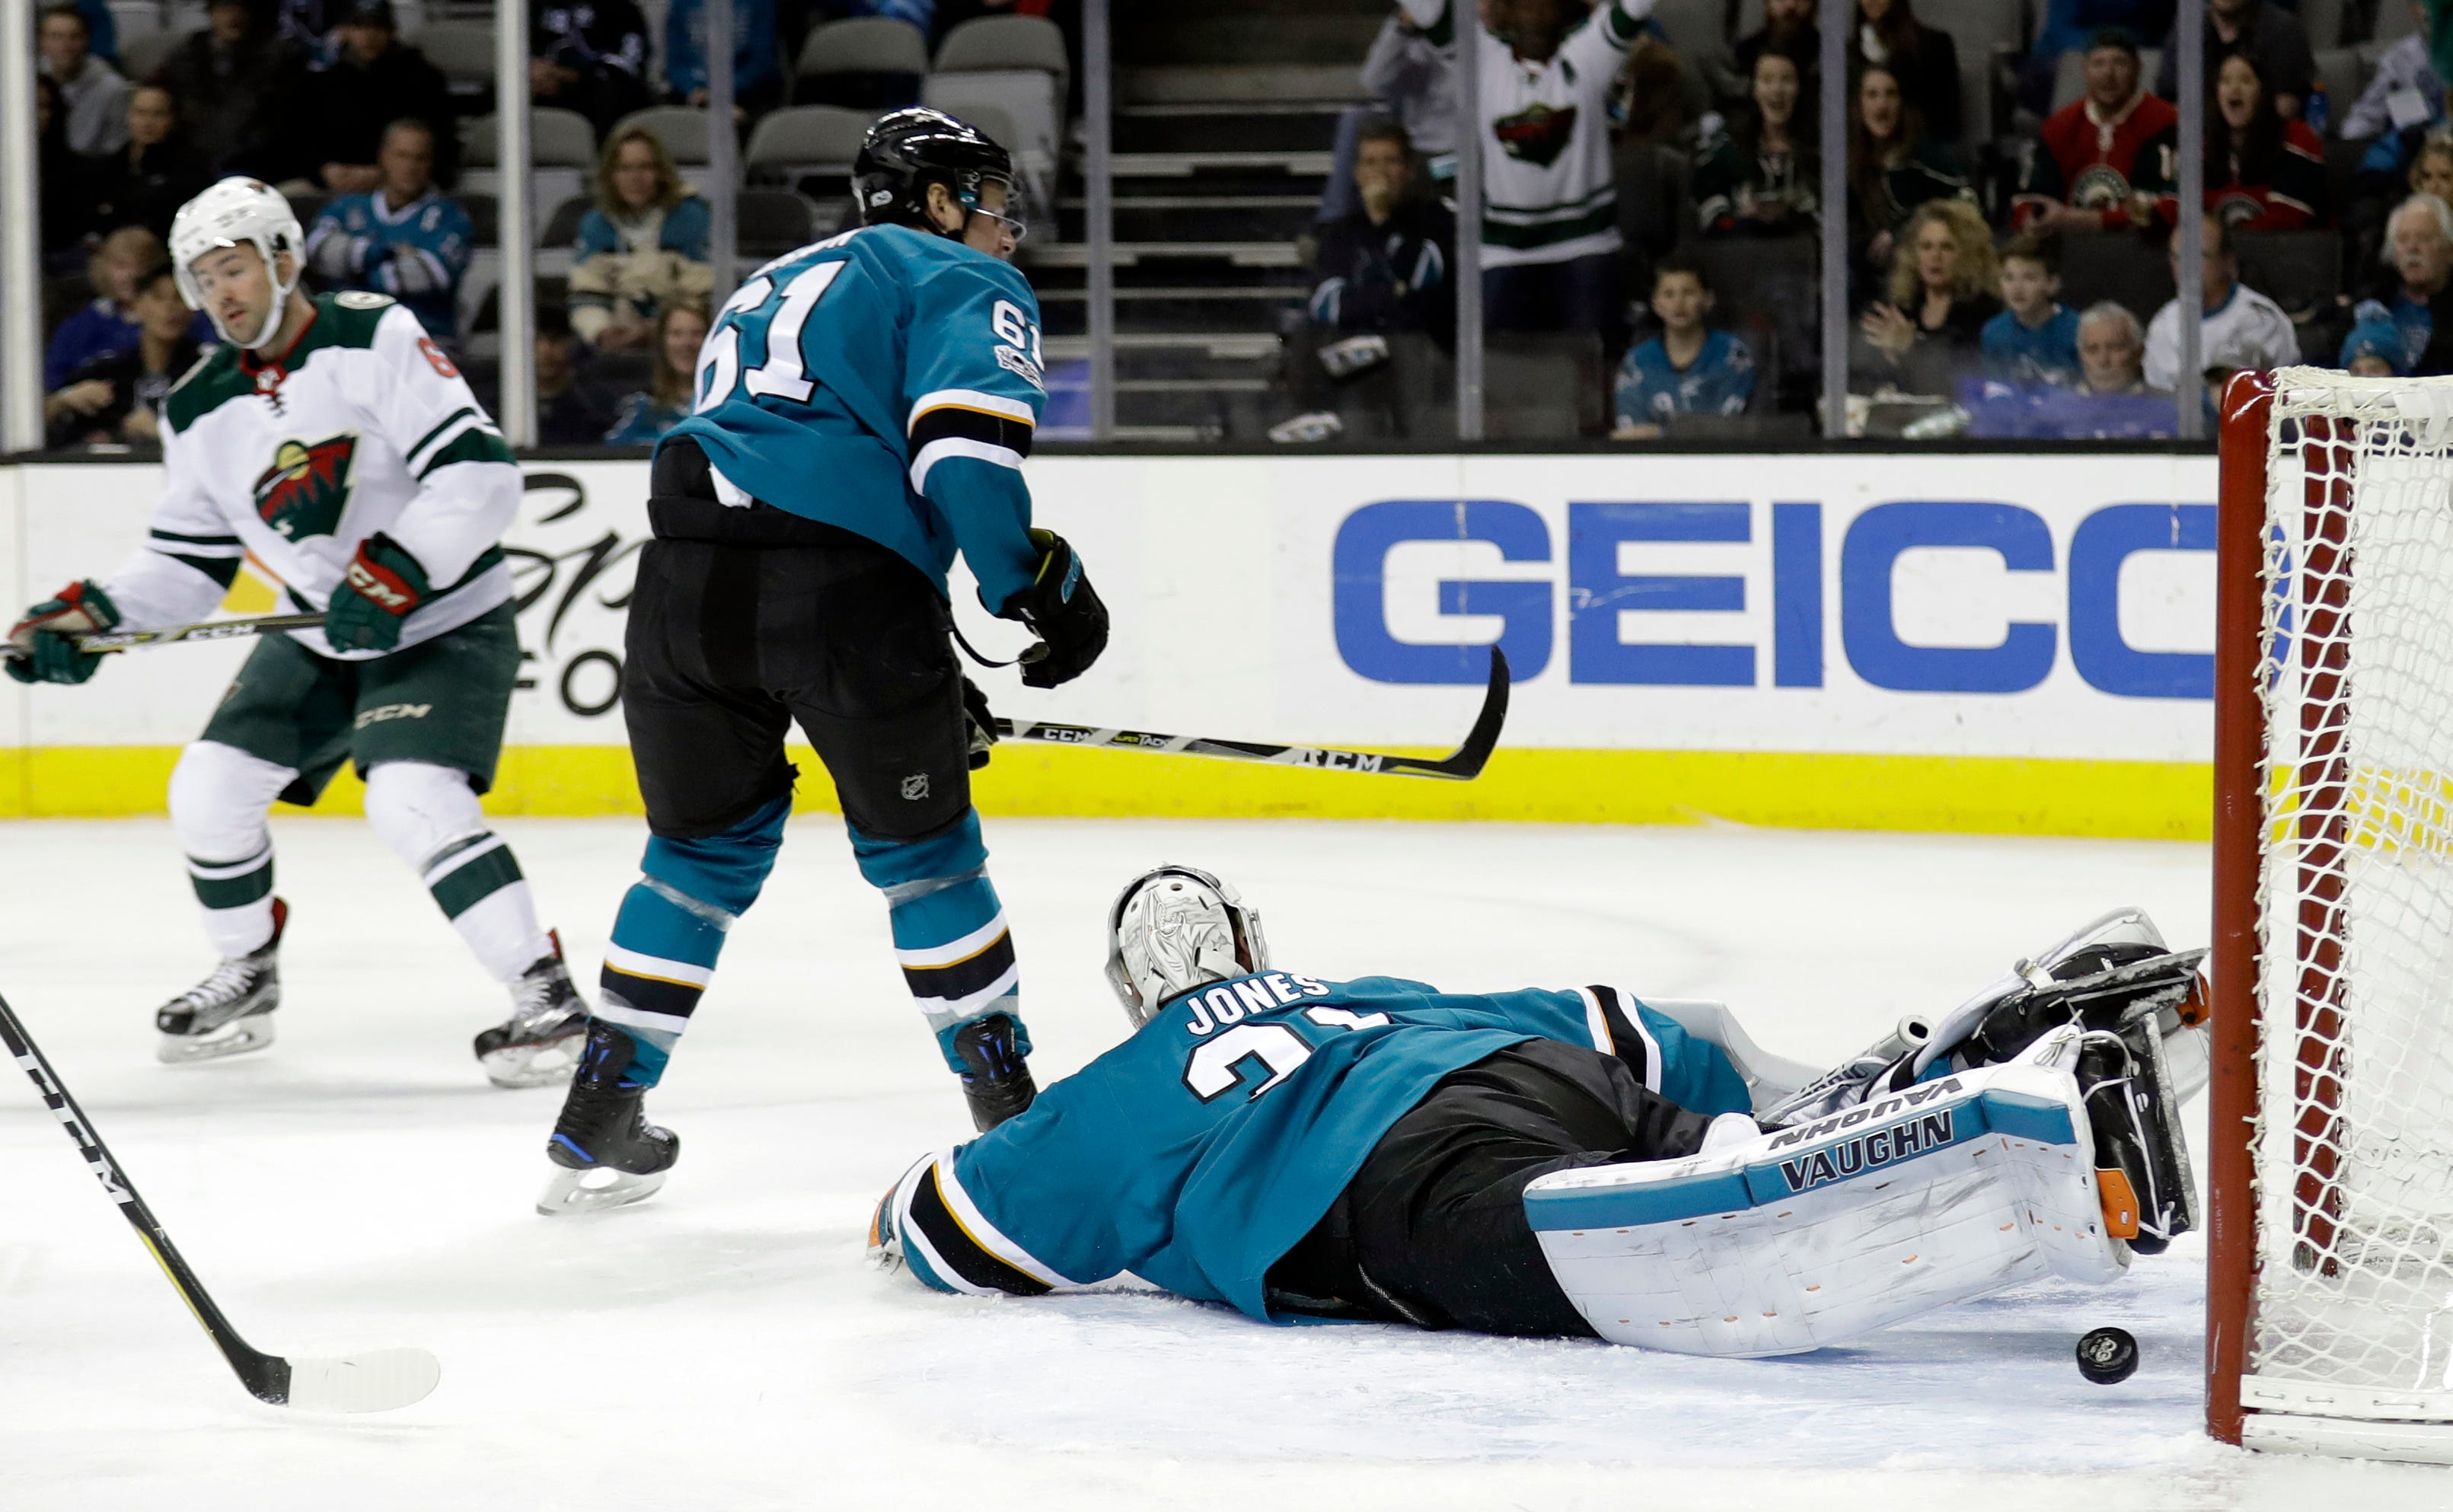 Niederreiter gives Wild 4-3 win over Sharks in OT